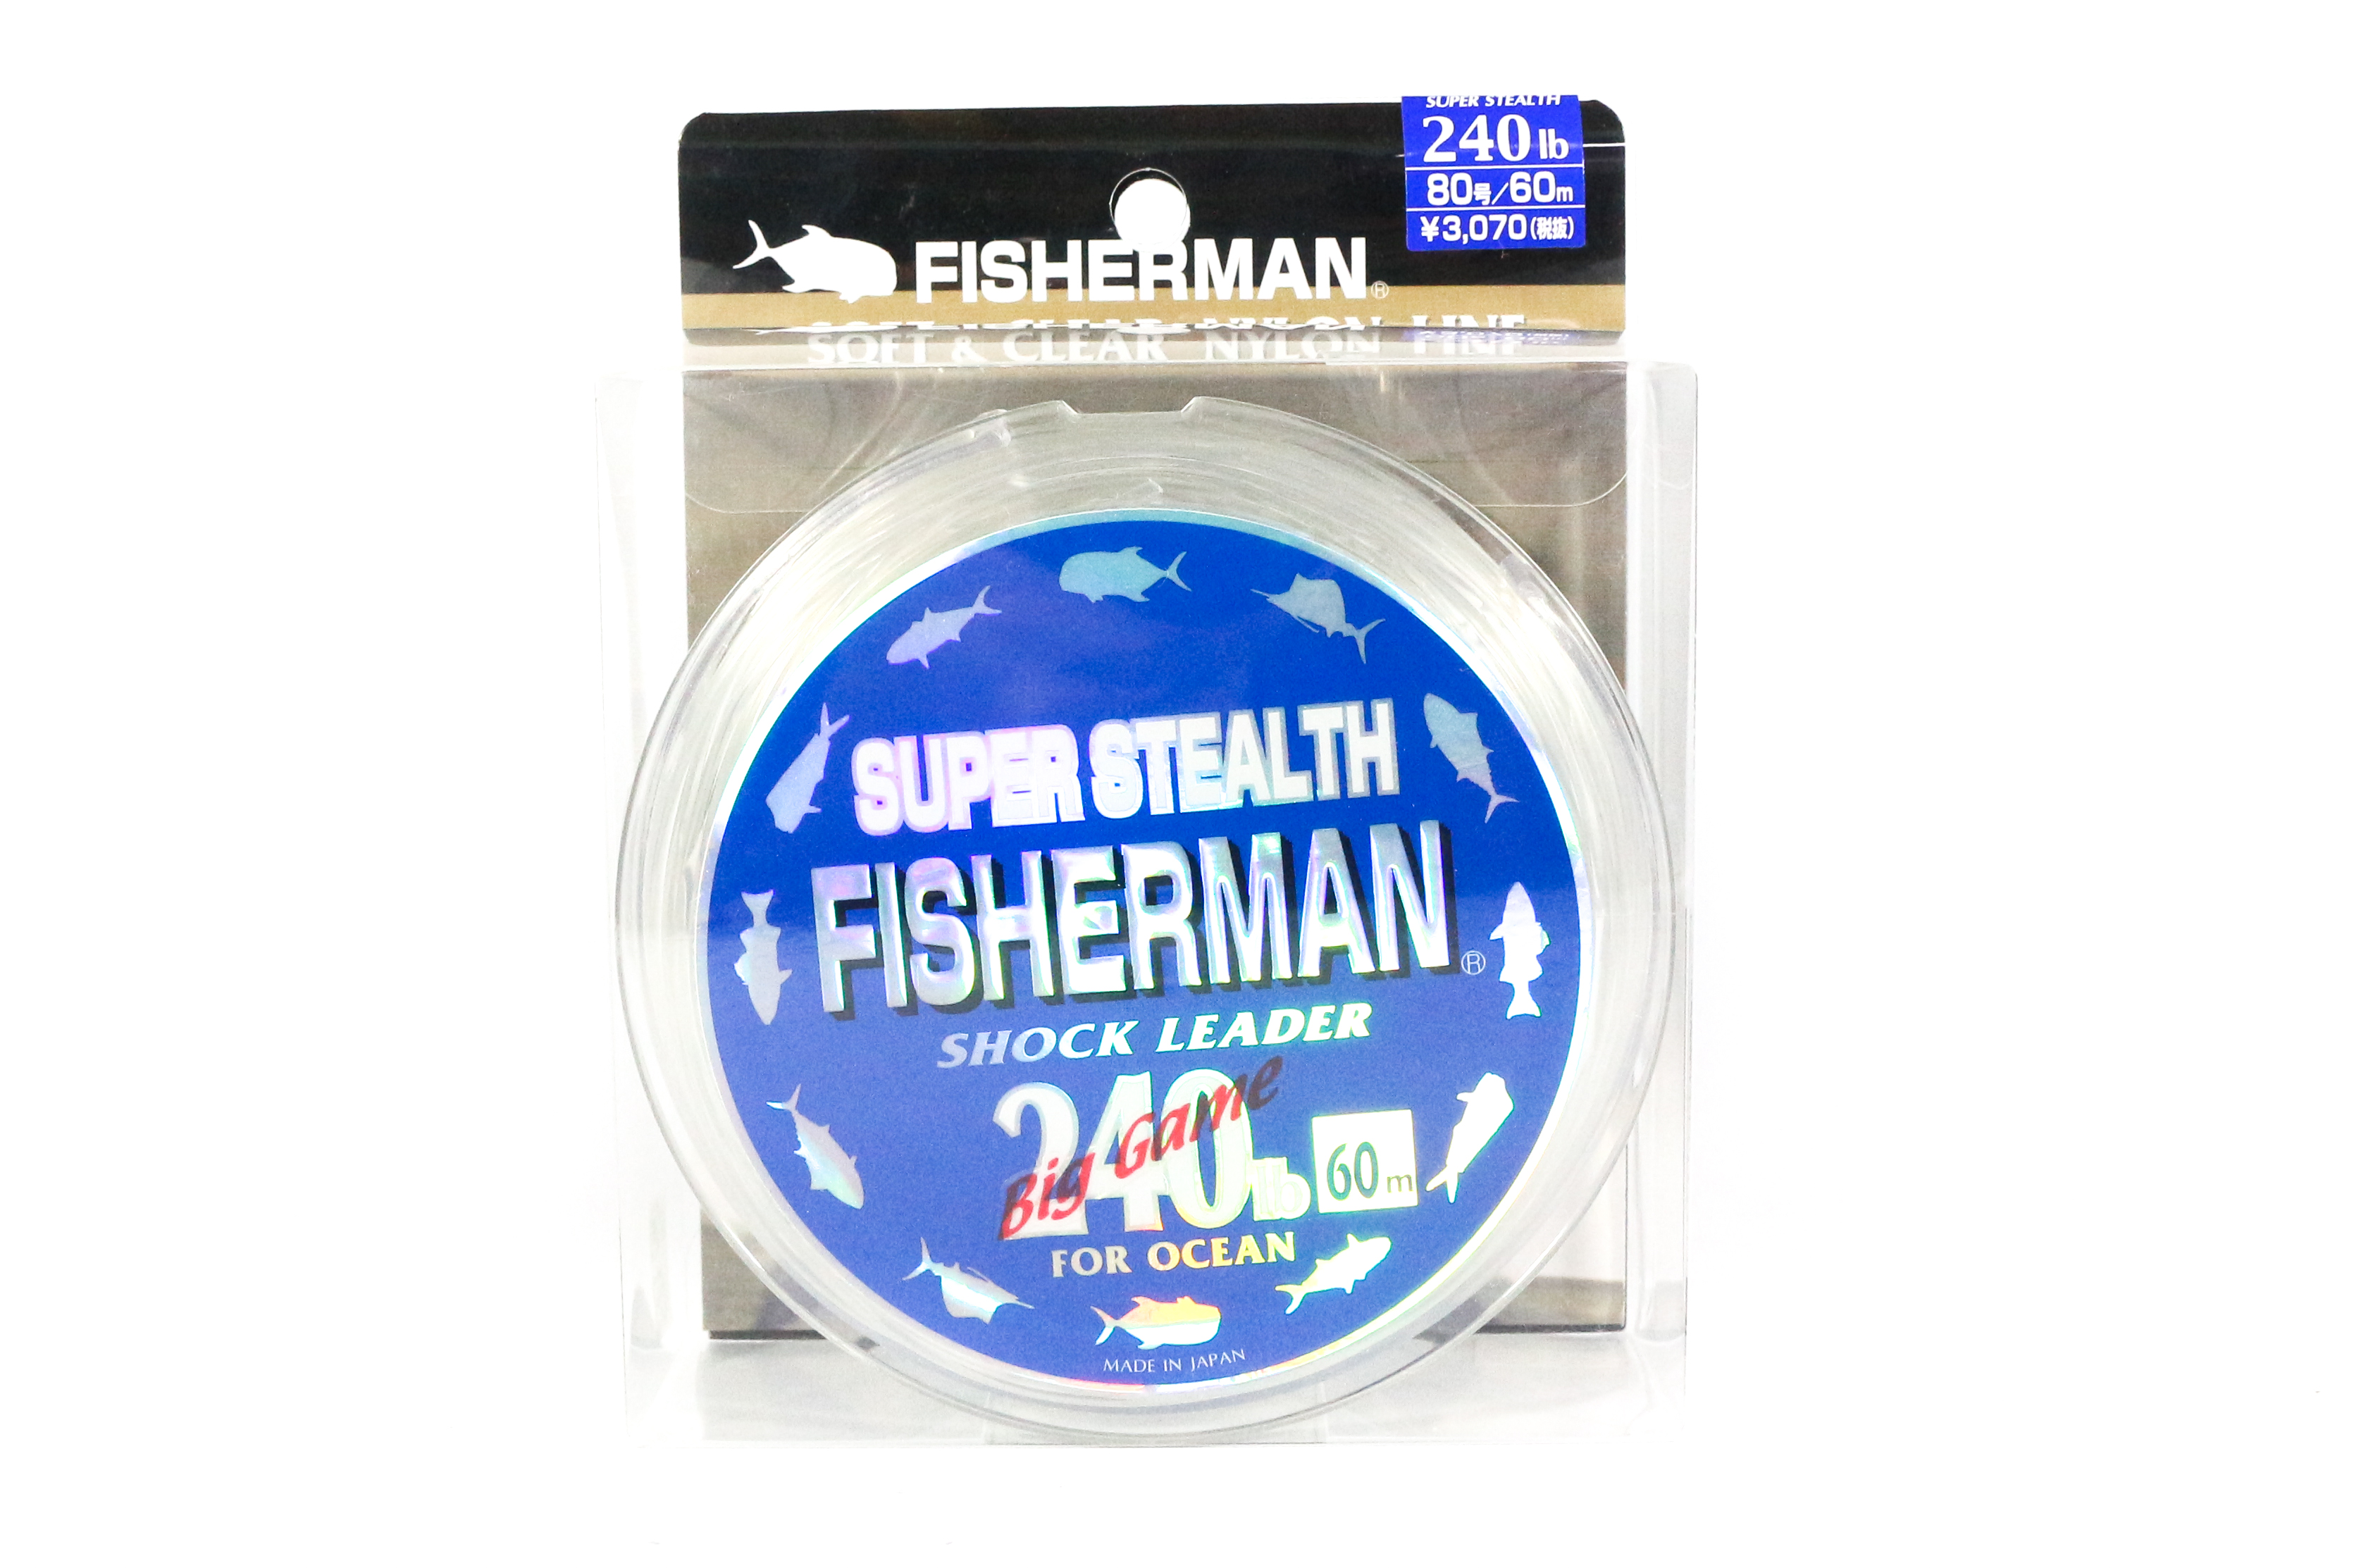 Fisherman Super Stealth Nylon Shock Leader 240 lb x 60 meter (0184)